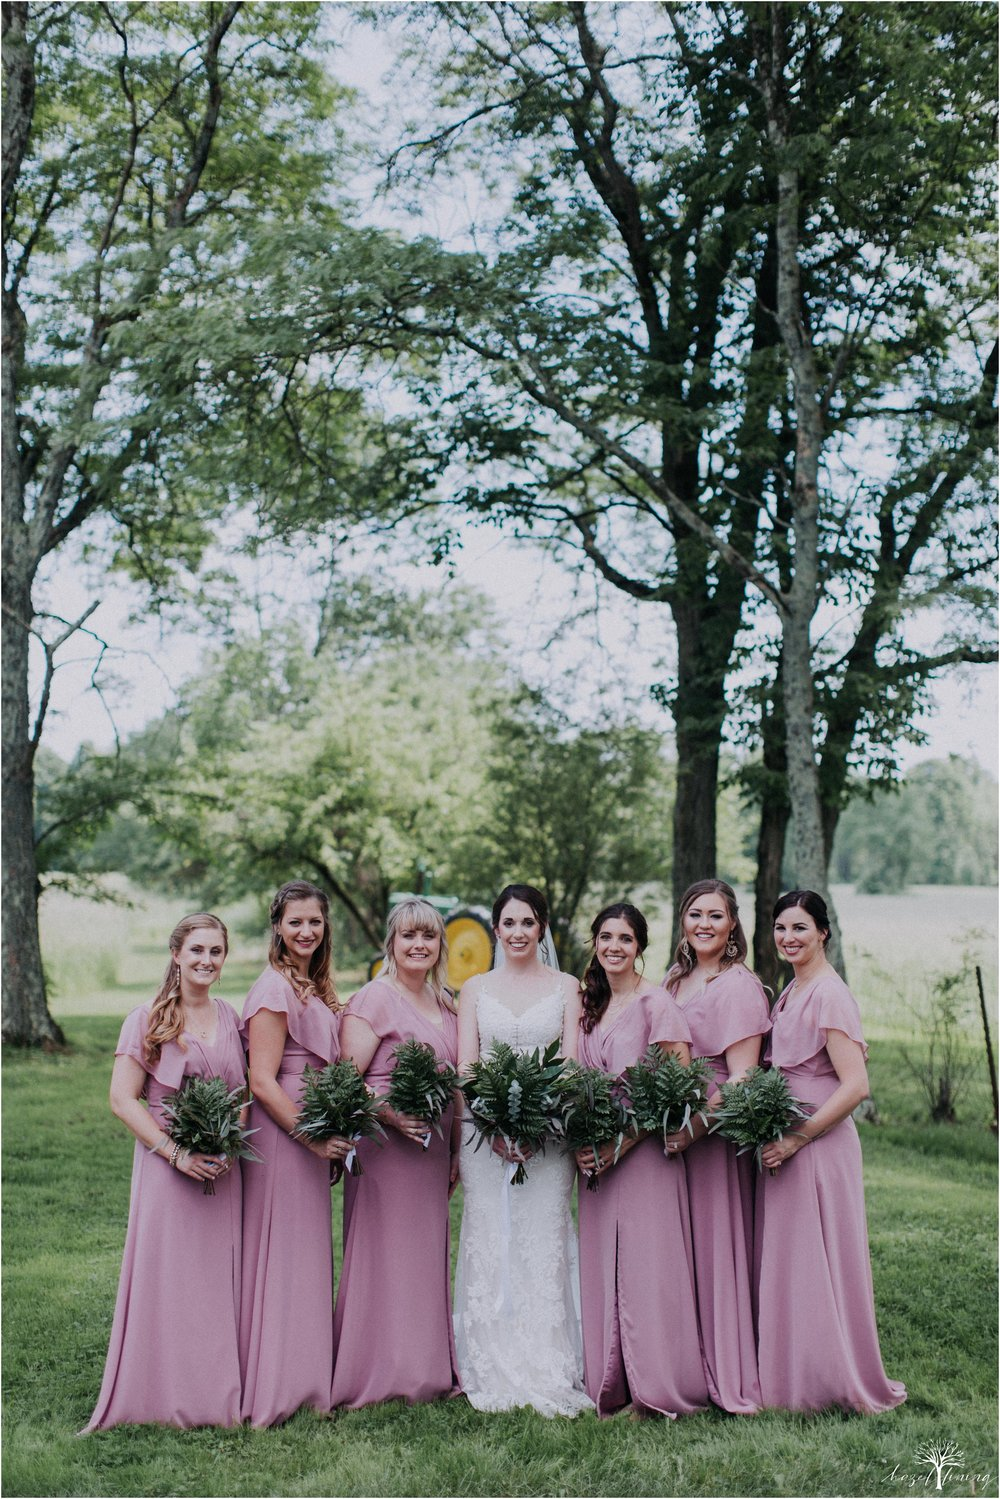 hazel-lining-travel-wedding-elopement-photography-lisa-landon-shoemaker-the-farm-bakery-and-events-bucks-county-quakertown-pennsylvania-summer-country-outdoor-farm-wedding_0025.jpg